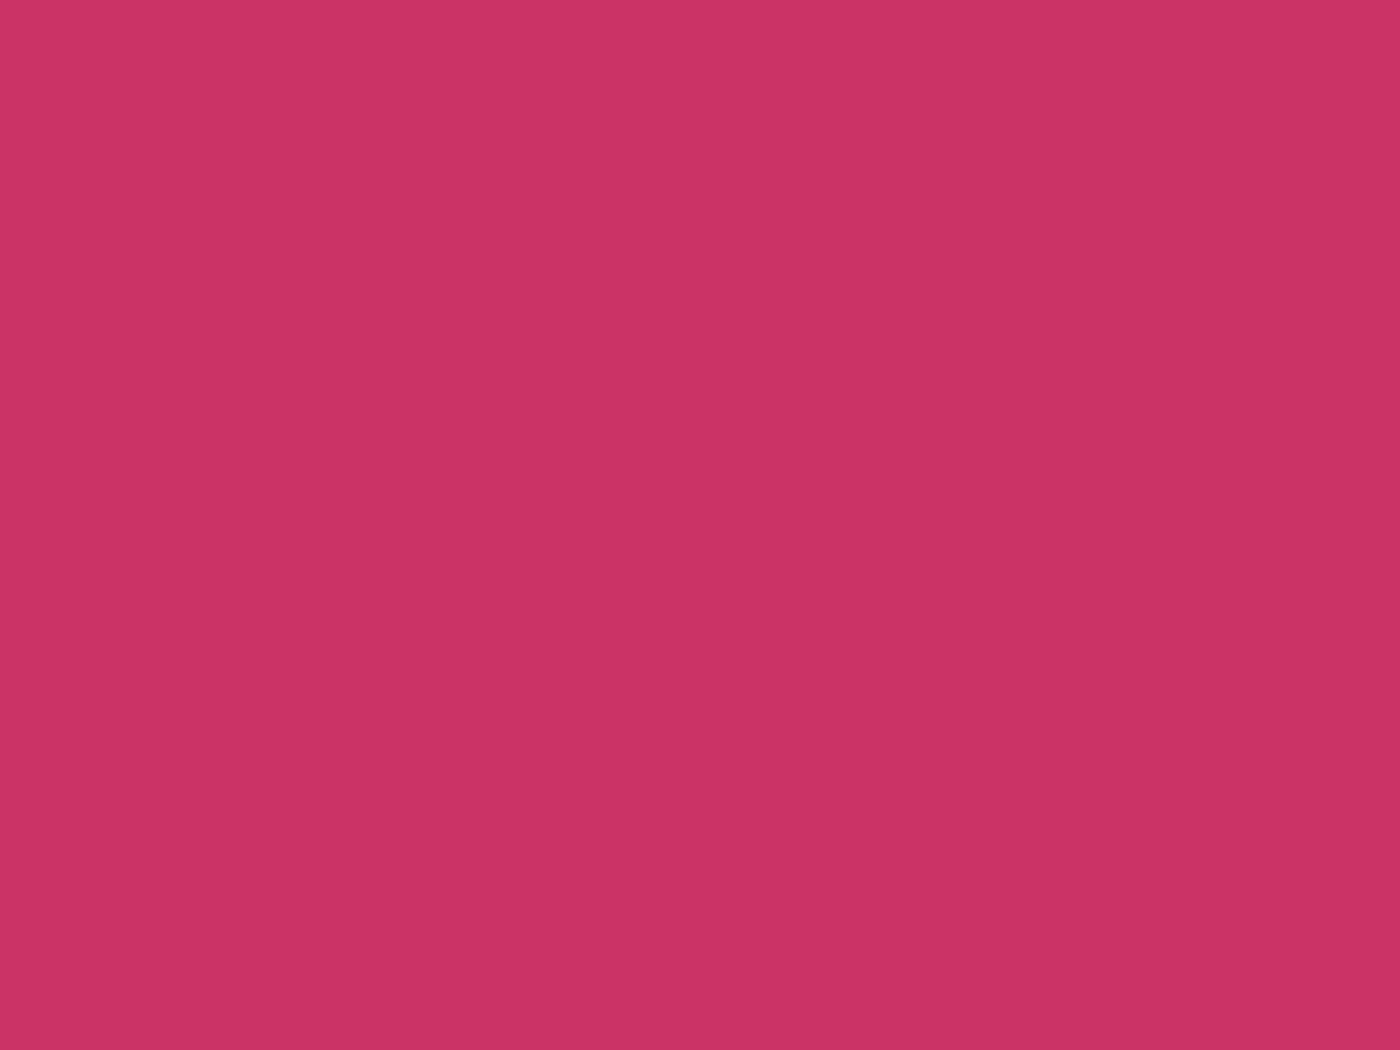 1400x1050 Steel Pink Solid Color Background